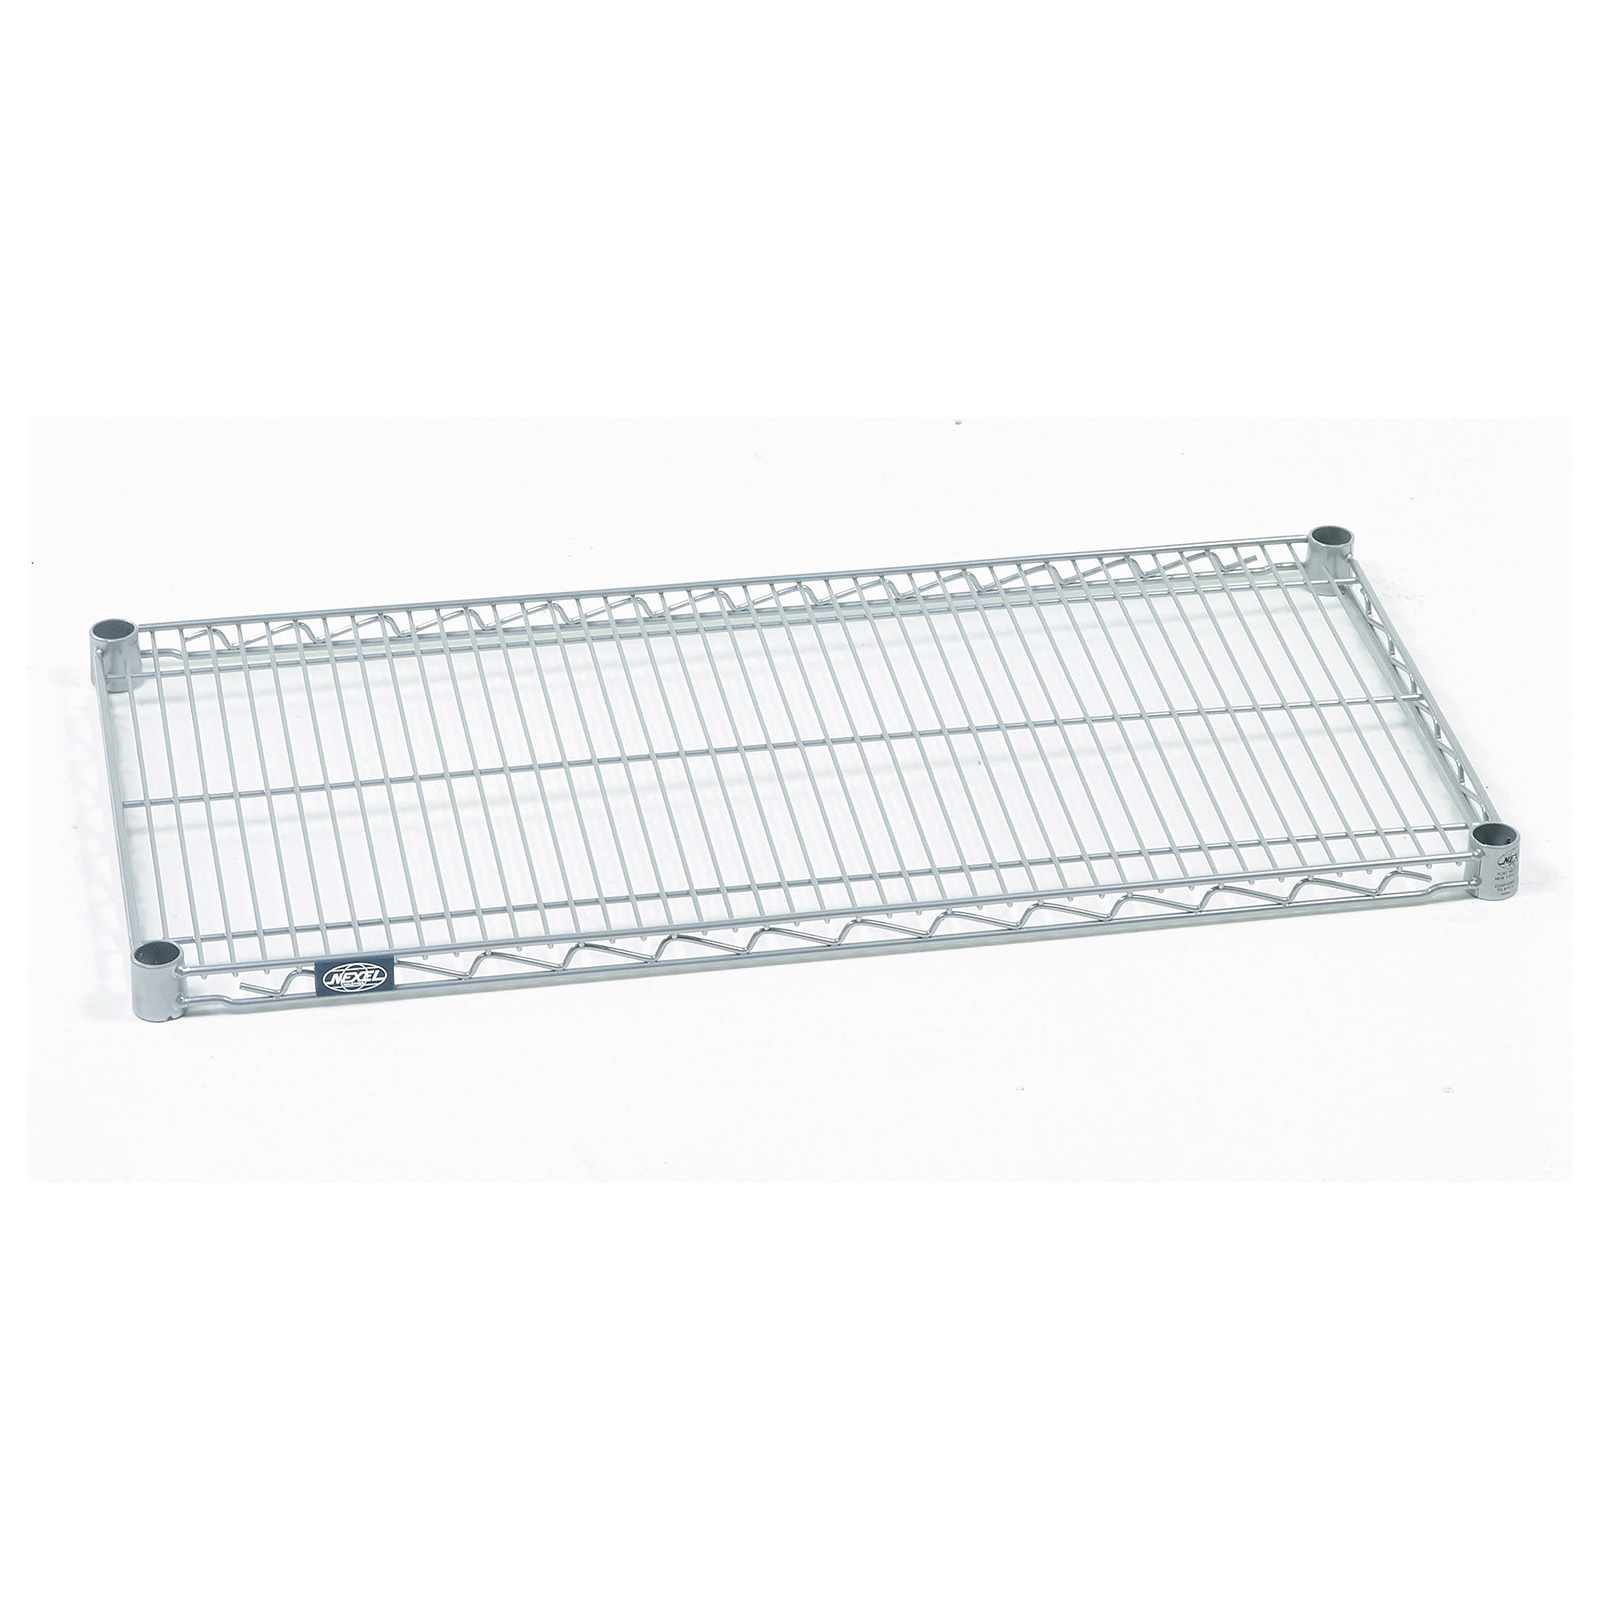 Nexel S1836EP wire shelves